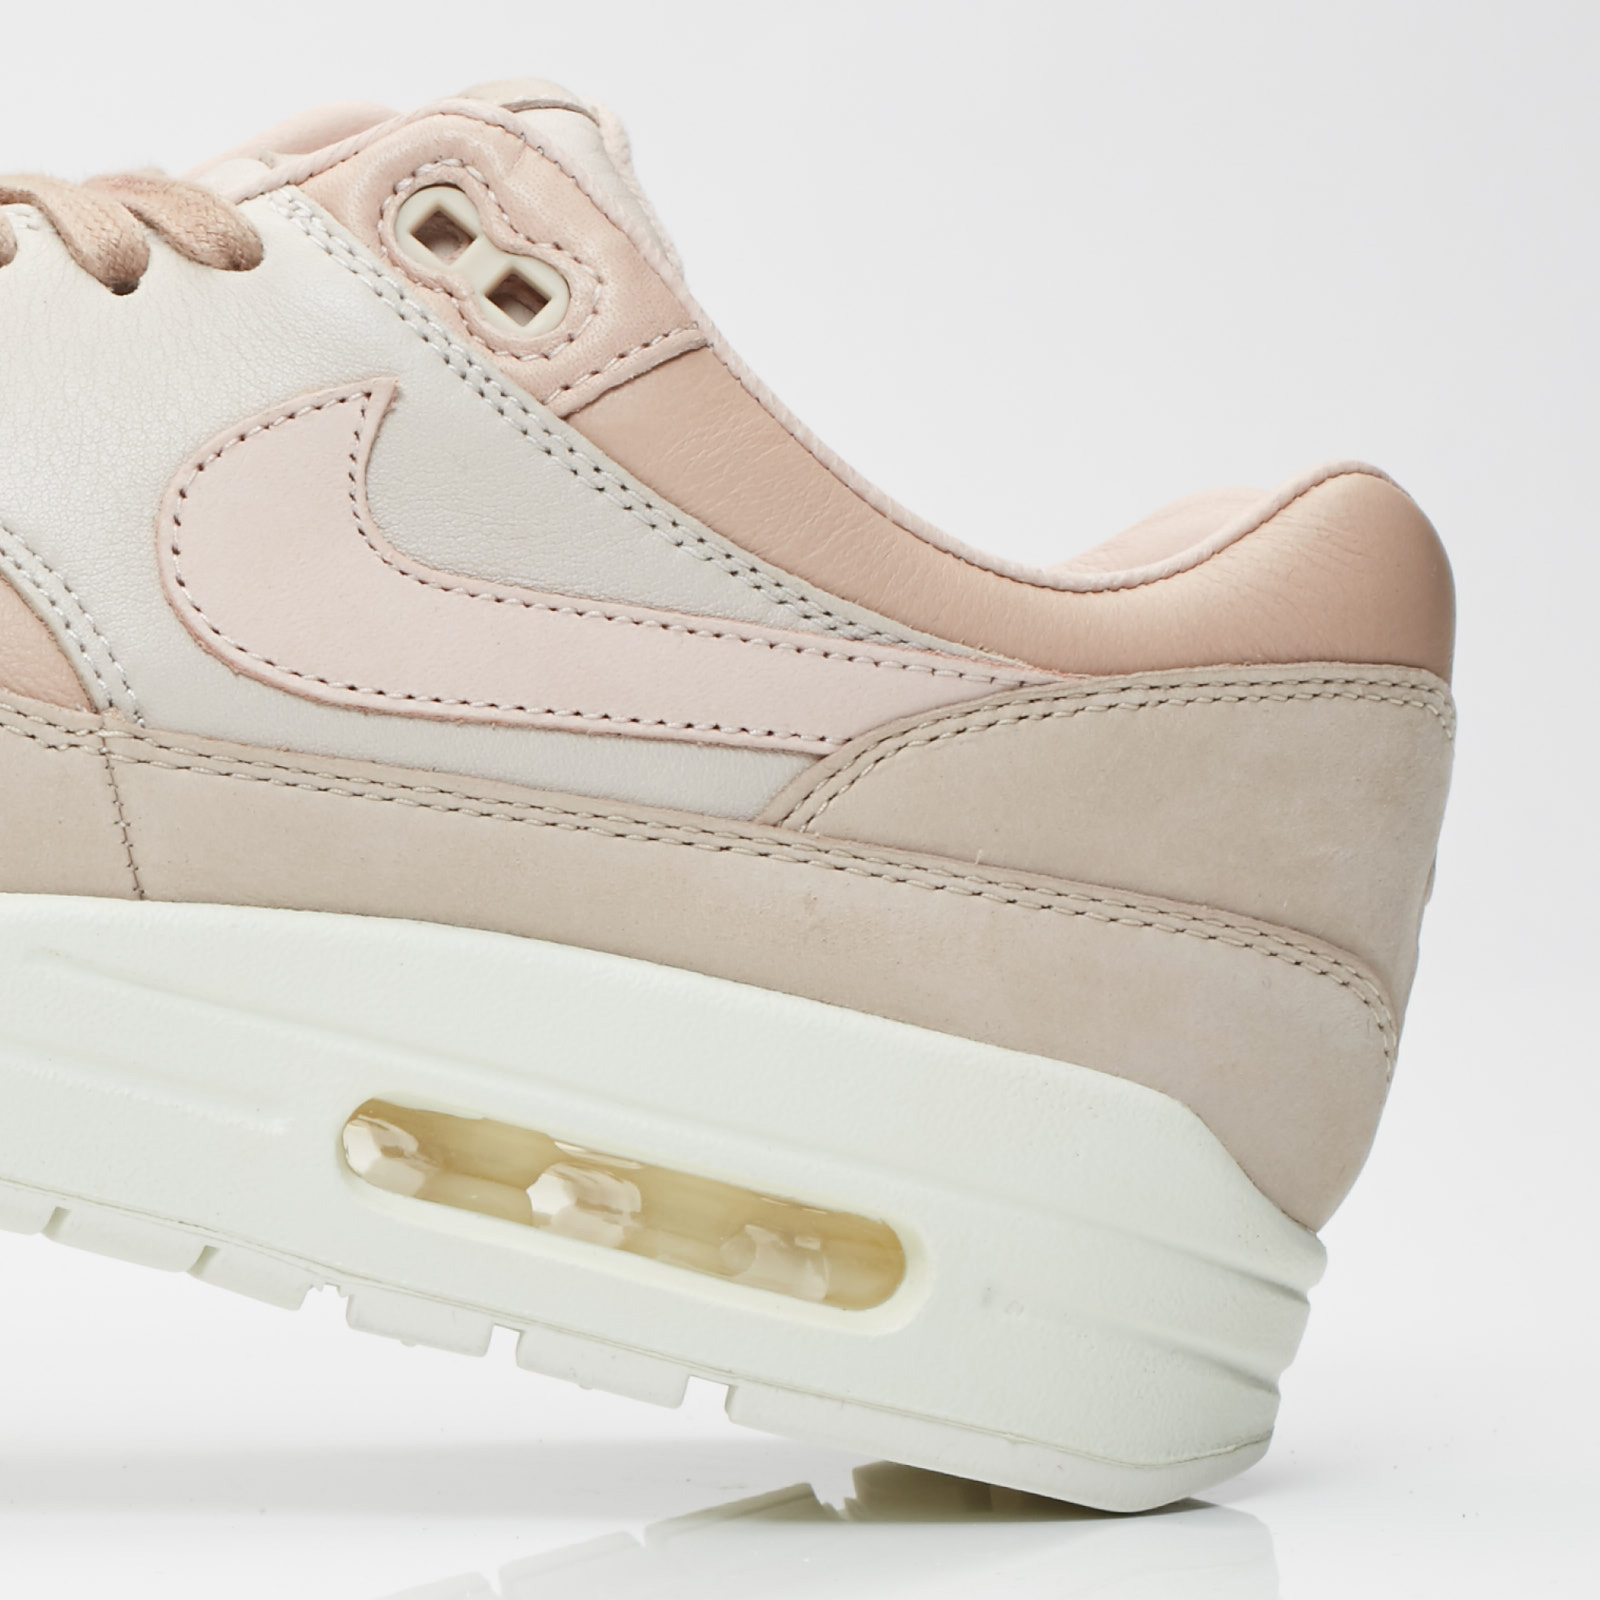 finest selection a0842 b5f0c ... inexpensive nikelab air max 1 pinnacle 7e2d9 40a94